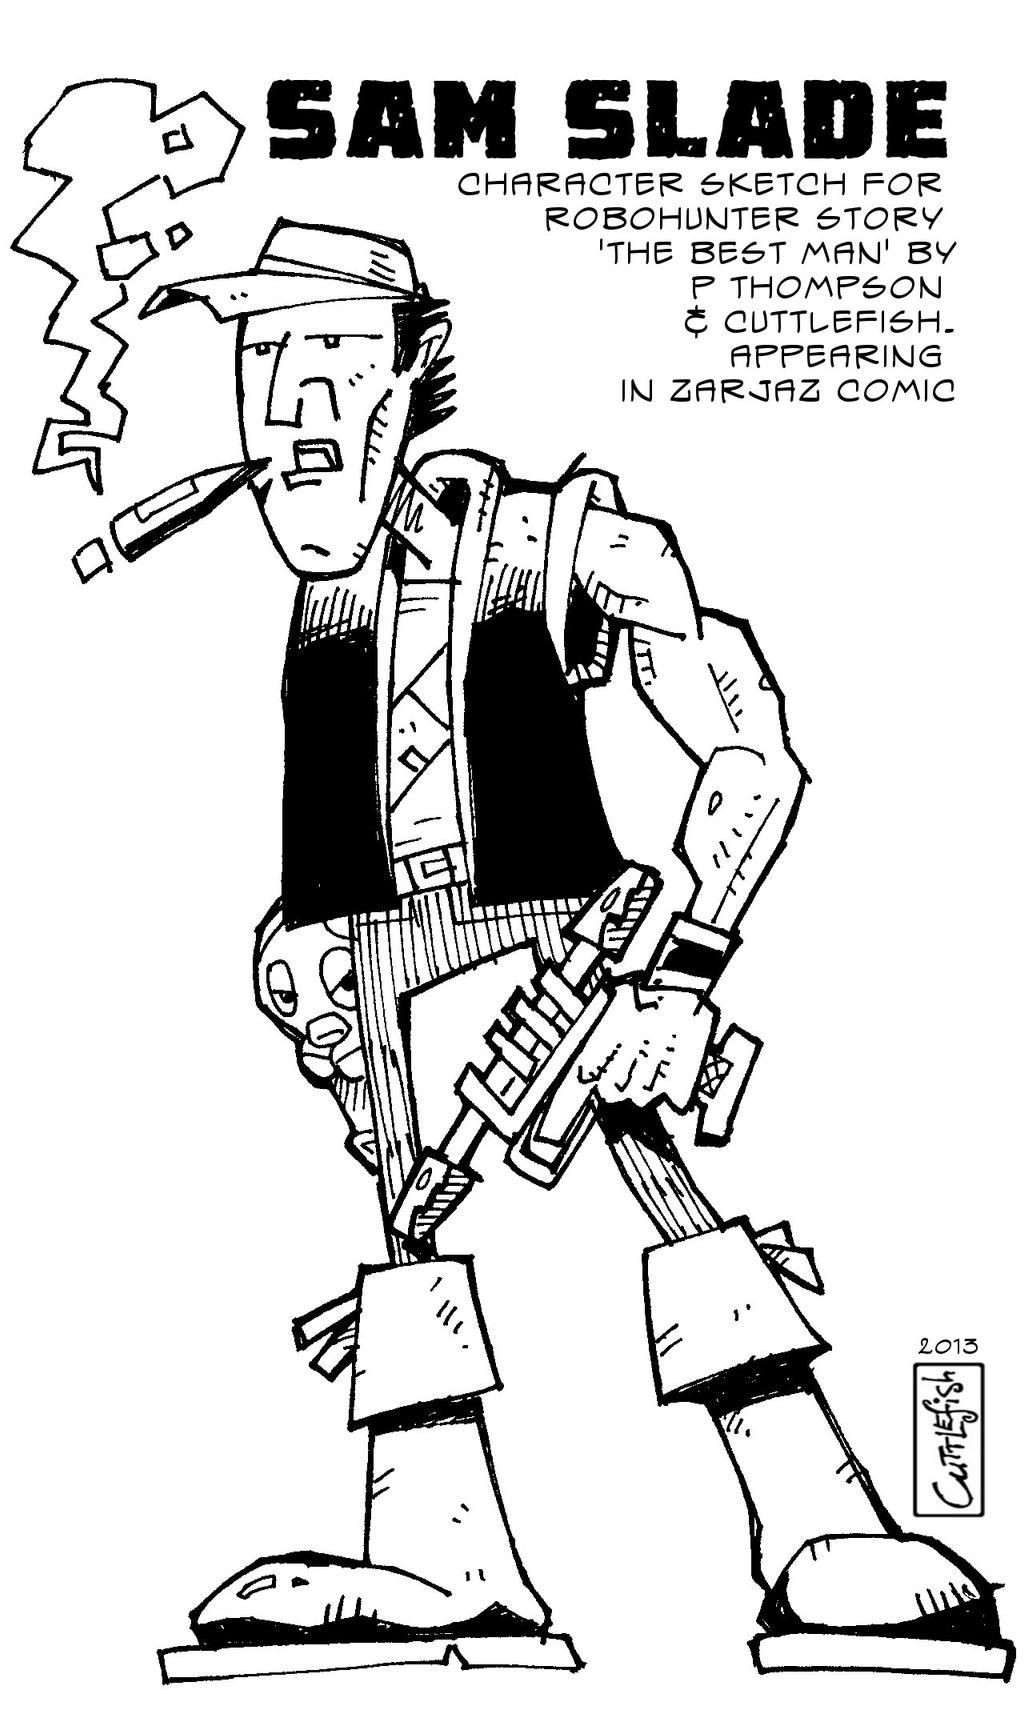 Sam Slade Robohunter Sketch